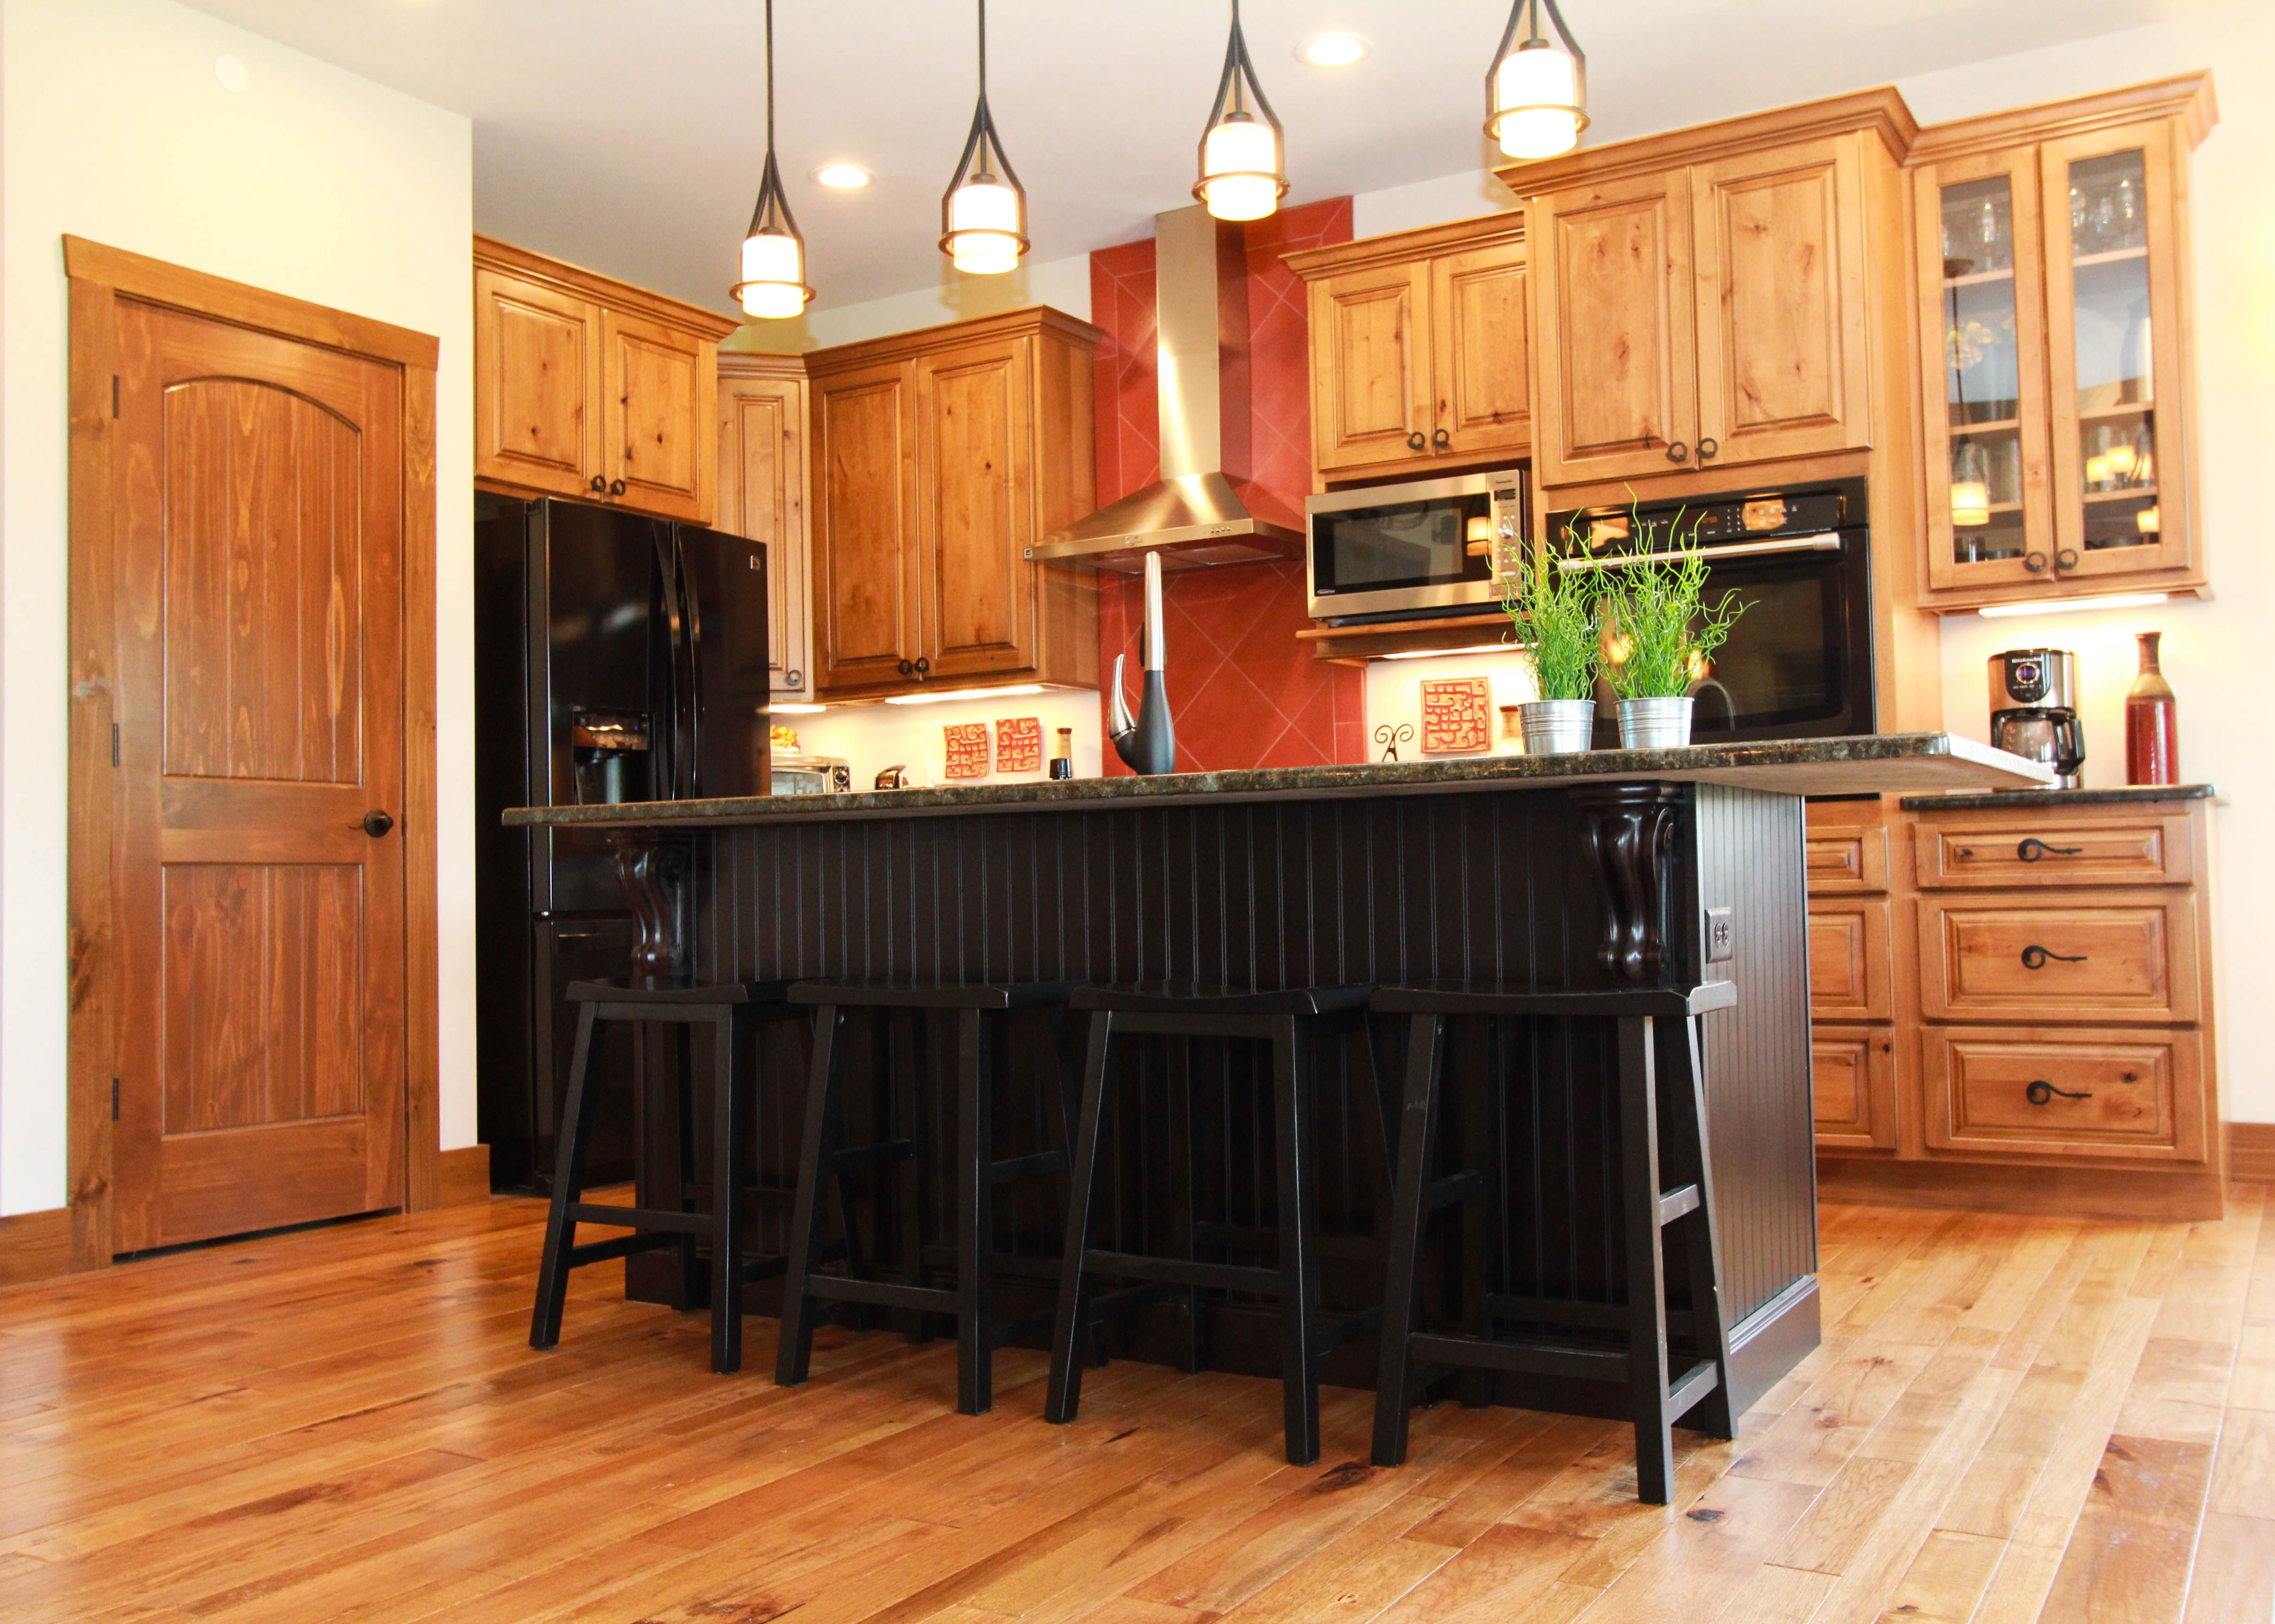 hickory cabinets black accent island kitchen remodel hickory cabinets kitchen on kitchen island ideas black id=93177